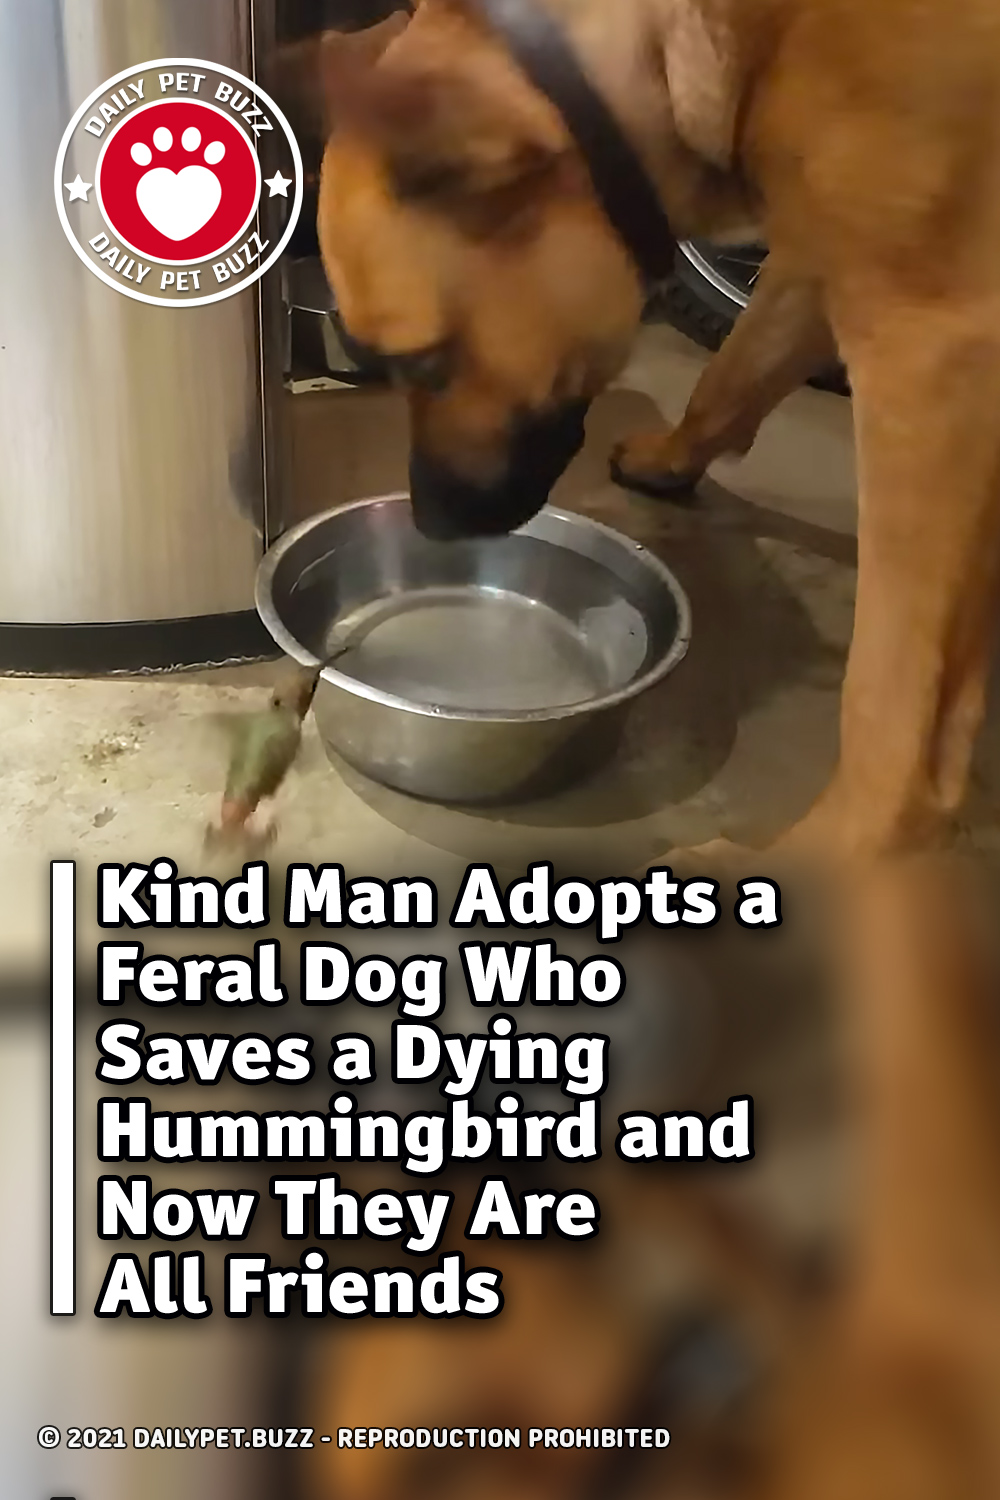 Kind Man Adopts a Feral Dog Who Saves a Dying Hummingbird and Now They Are All Friends